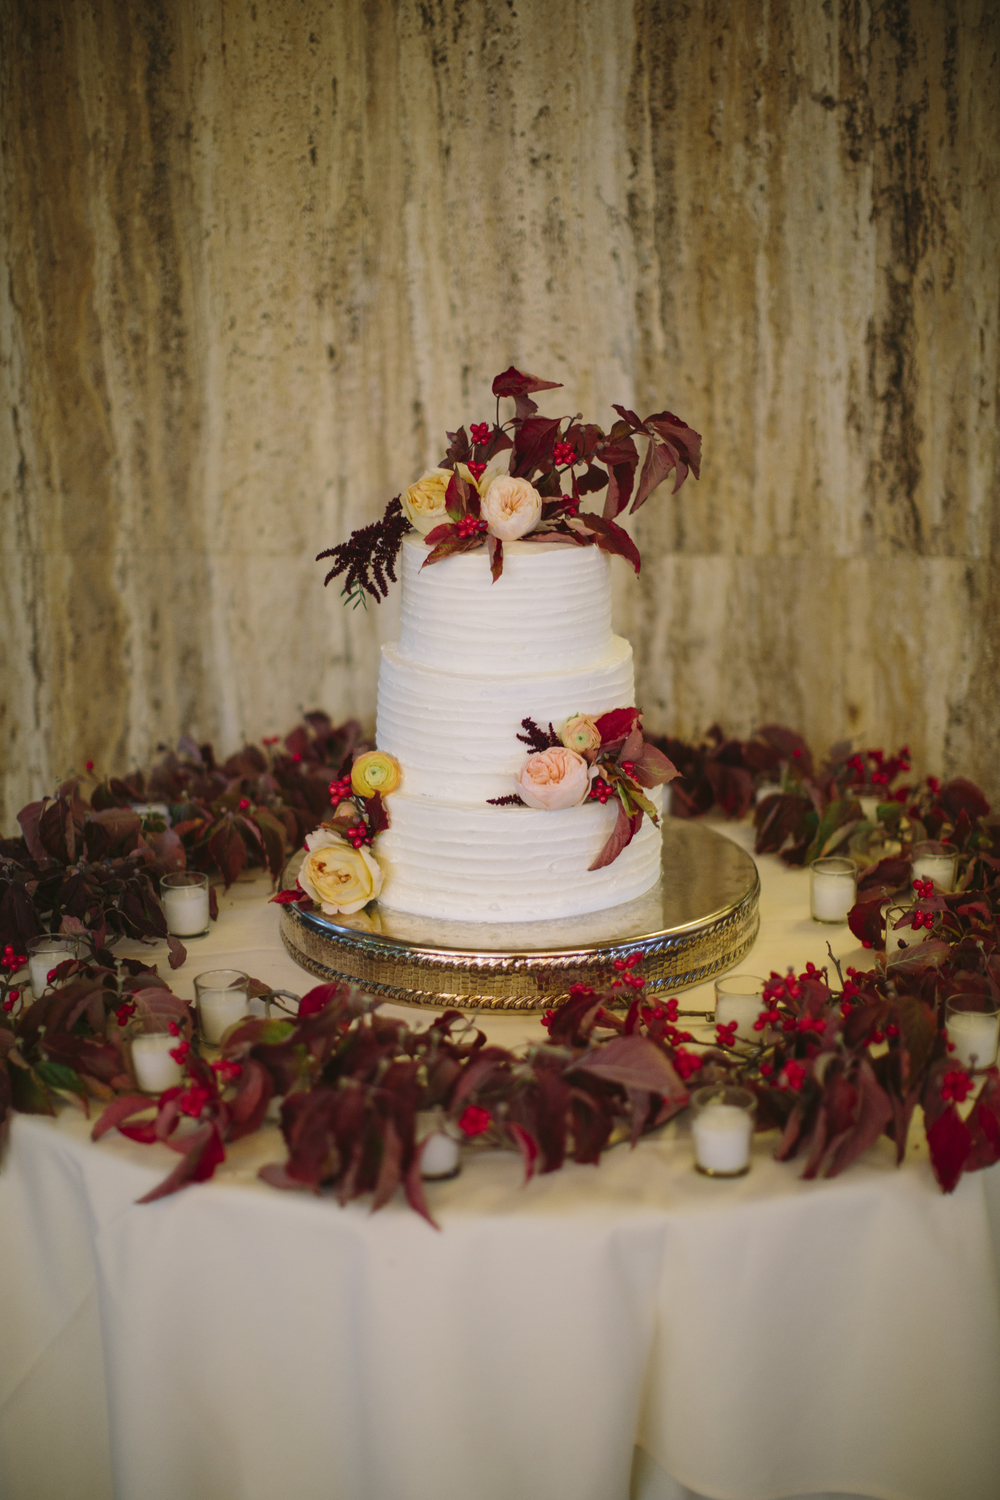 These cake flowers were the finishing touches to a day filled with fall florals.  Yellow and pink roses, ranunculus, red berries, and deep red leaves decorated each layer and formed a garland for a truly seasonal look.